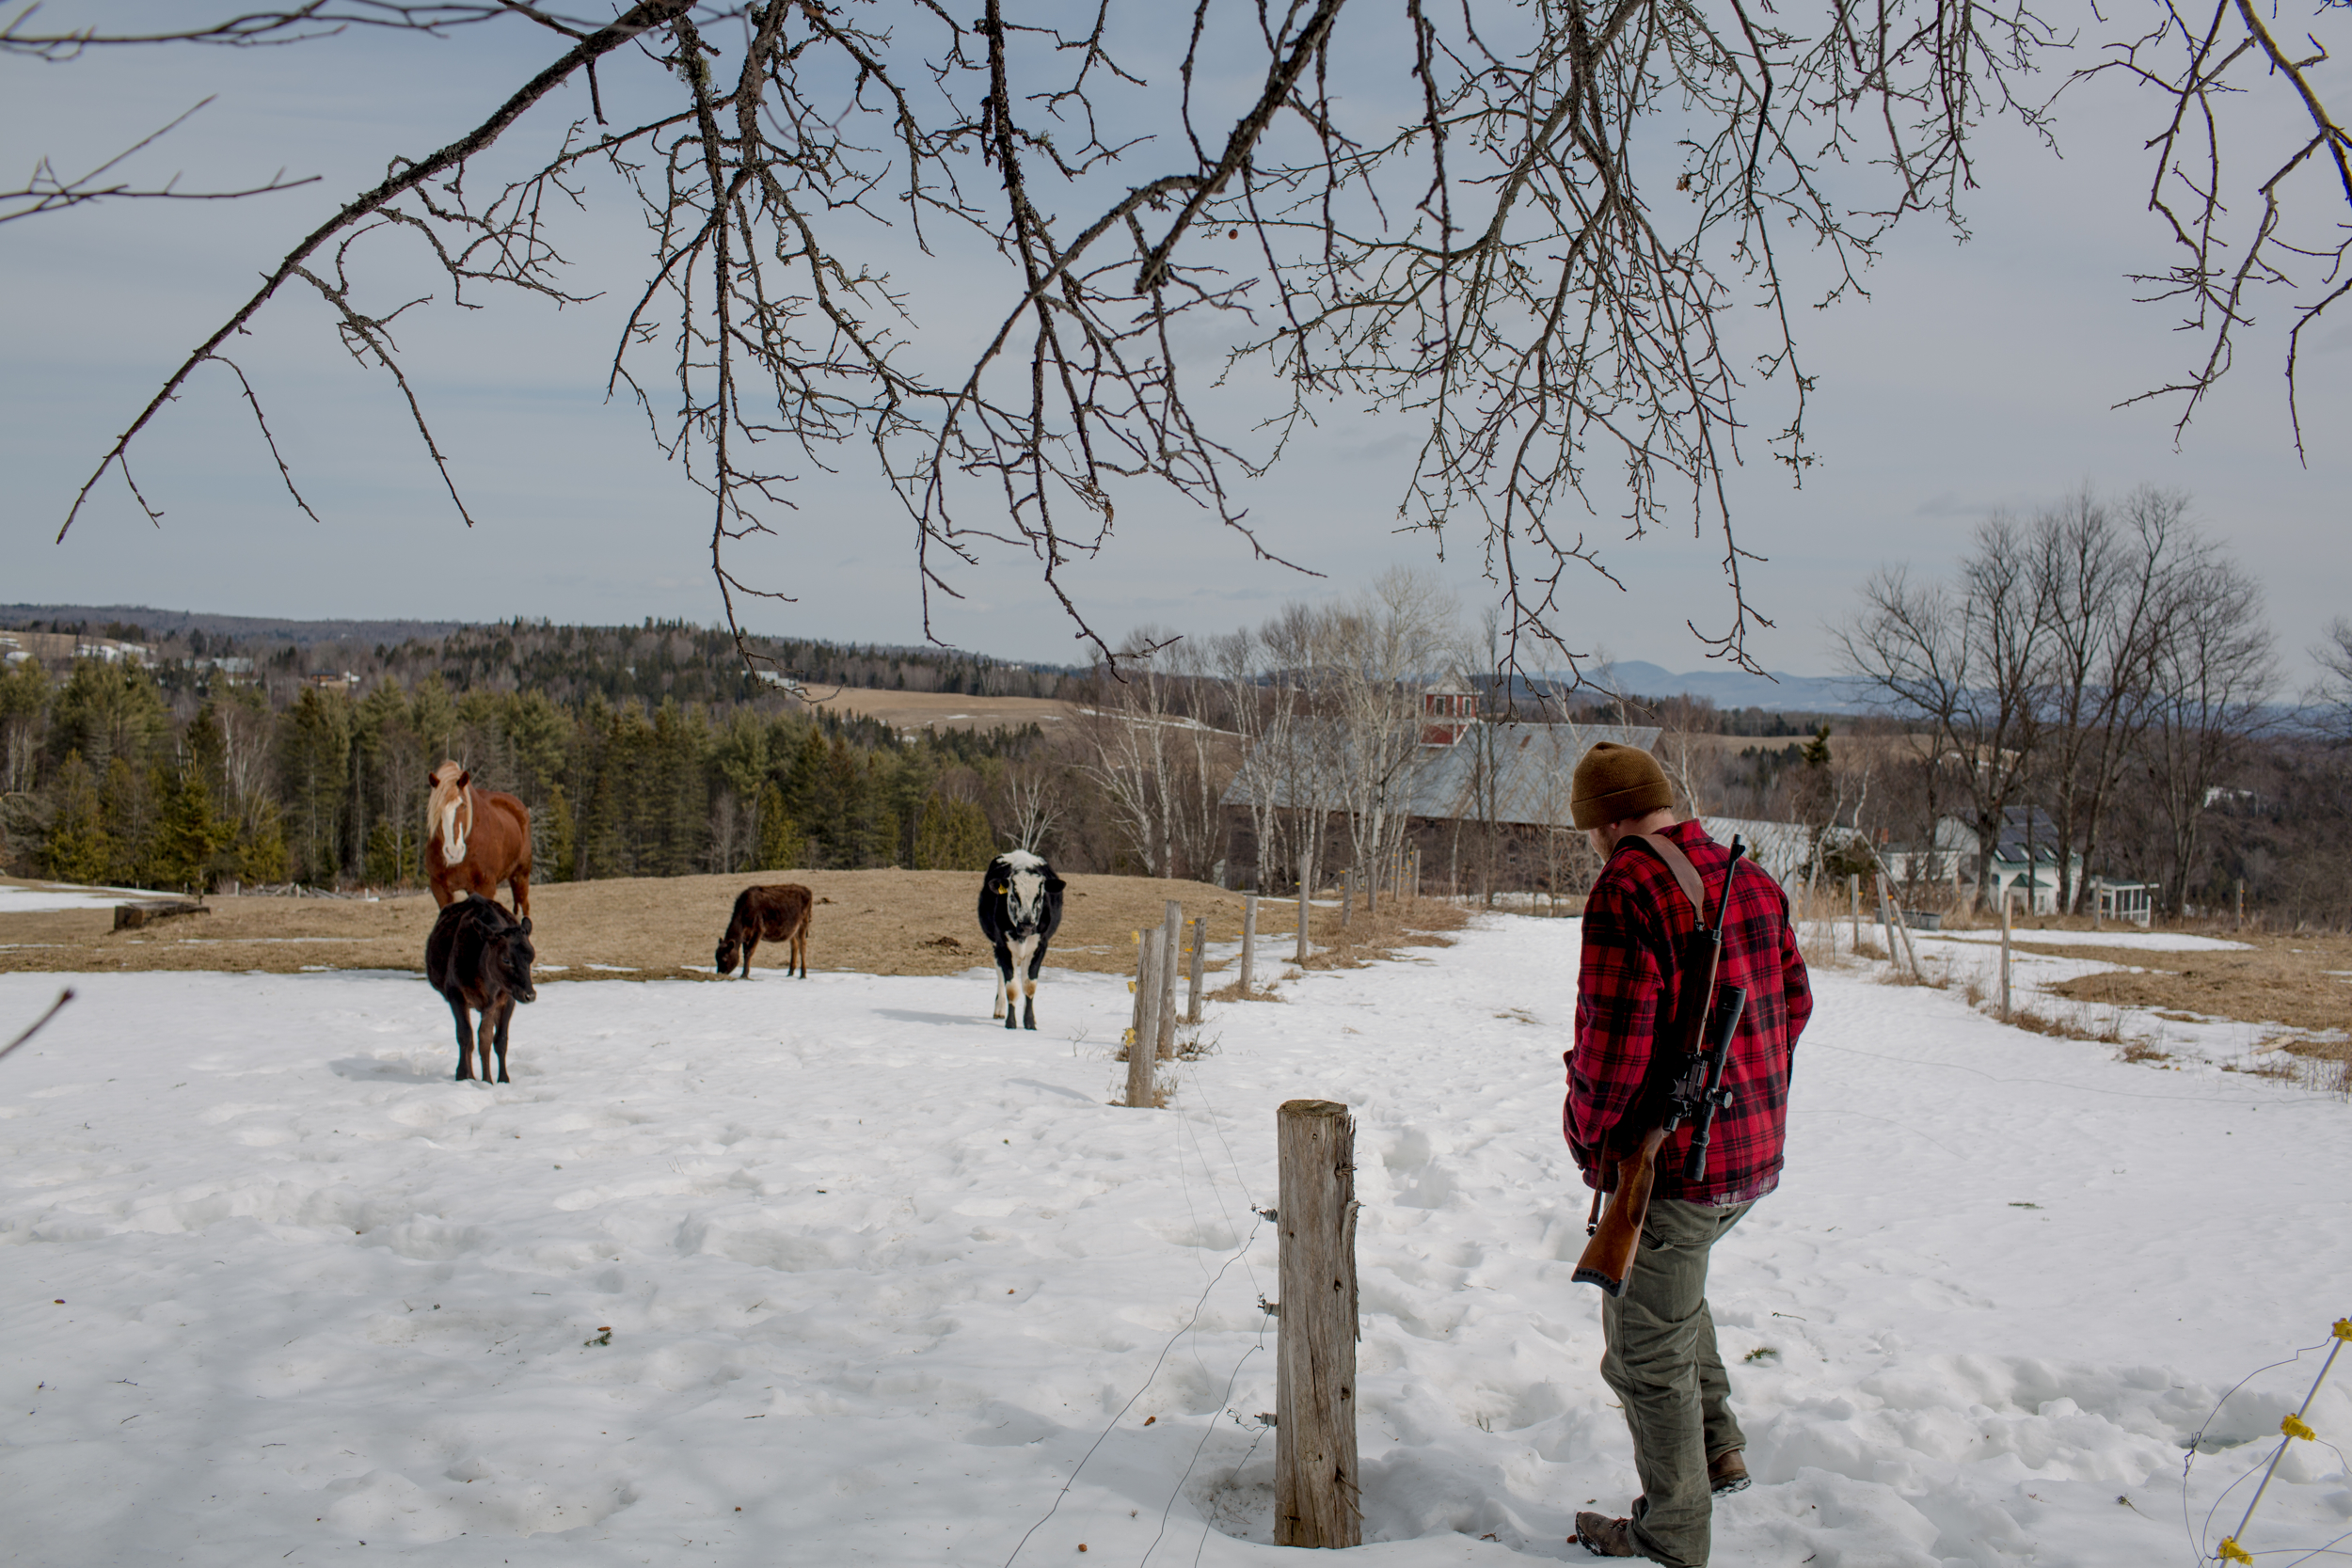 "Tom Galinat, 35, takes care of a few chores, which includes walking the fence-line checking for predators or damage, on a farm in Peacham, V.T. Galinat moved in 2013 to farm with his family on their land. A father of two as well as the town's clerk, Galinat says he is a gun owner who is in favor of what he calls common sense gun control. ""We need gun safety measures passed because we're abusing that,"" he said. ""It's not the gun, it's the features of the gun. Like higher capacity magazines."" For Galinat and his family, their livelihood relies on owning a firearm, hunting for food as well as its use on their farm in rural Vermont. He explained a gun is no different of a tool to him than a hammer or saw and he grew up with his grandfather using a gun to hunt. Galinat inherited his grandfather's Savage Fox Model D side-by-side two-trigger shotgun which was once used for bird hunting and is now brought out each year for opening day of turkey hunting. There is a sentimental attachment, he said, describing a worn out area on the stock where his grandfather's hand would grip. ""I don't want to give up my guns,"" he said, following chores at his farm on Friday, April 7, 2018. ""I relate to both sides so well.""